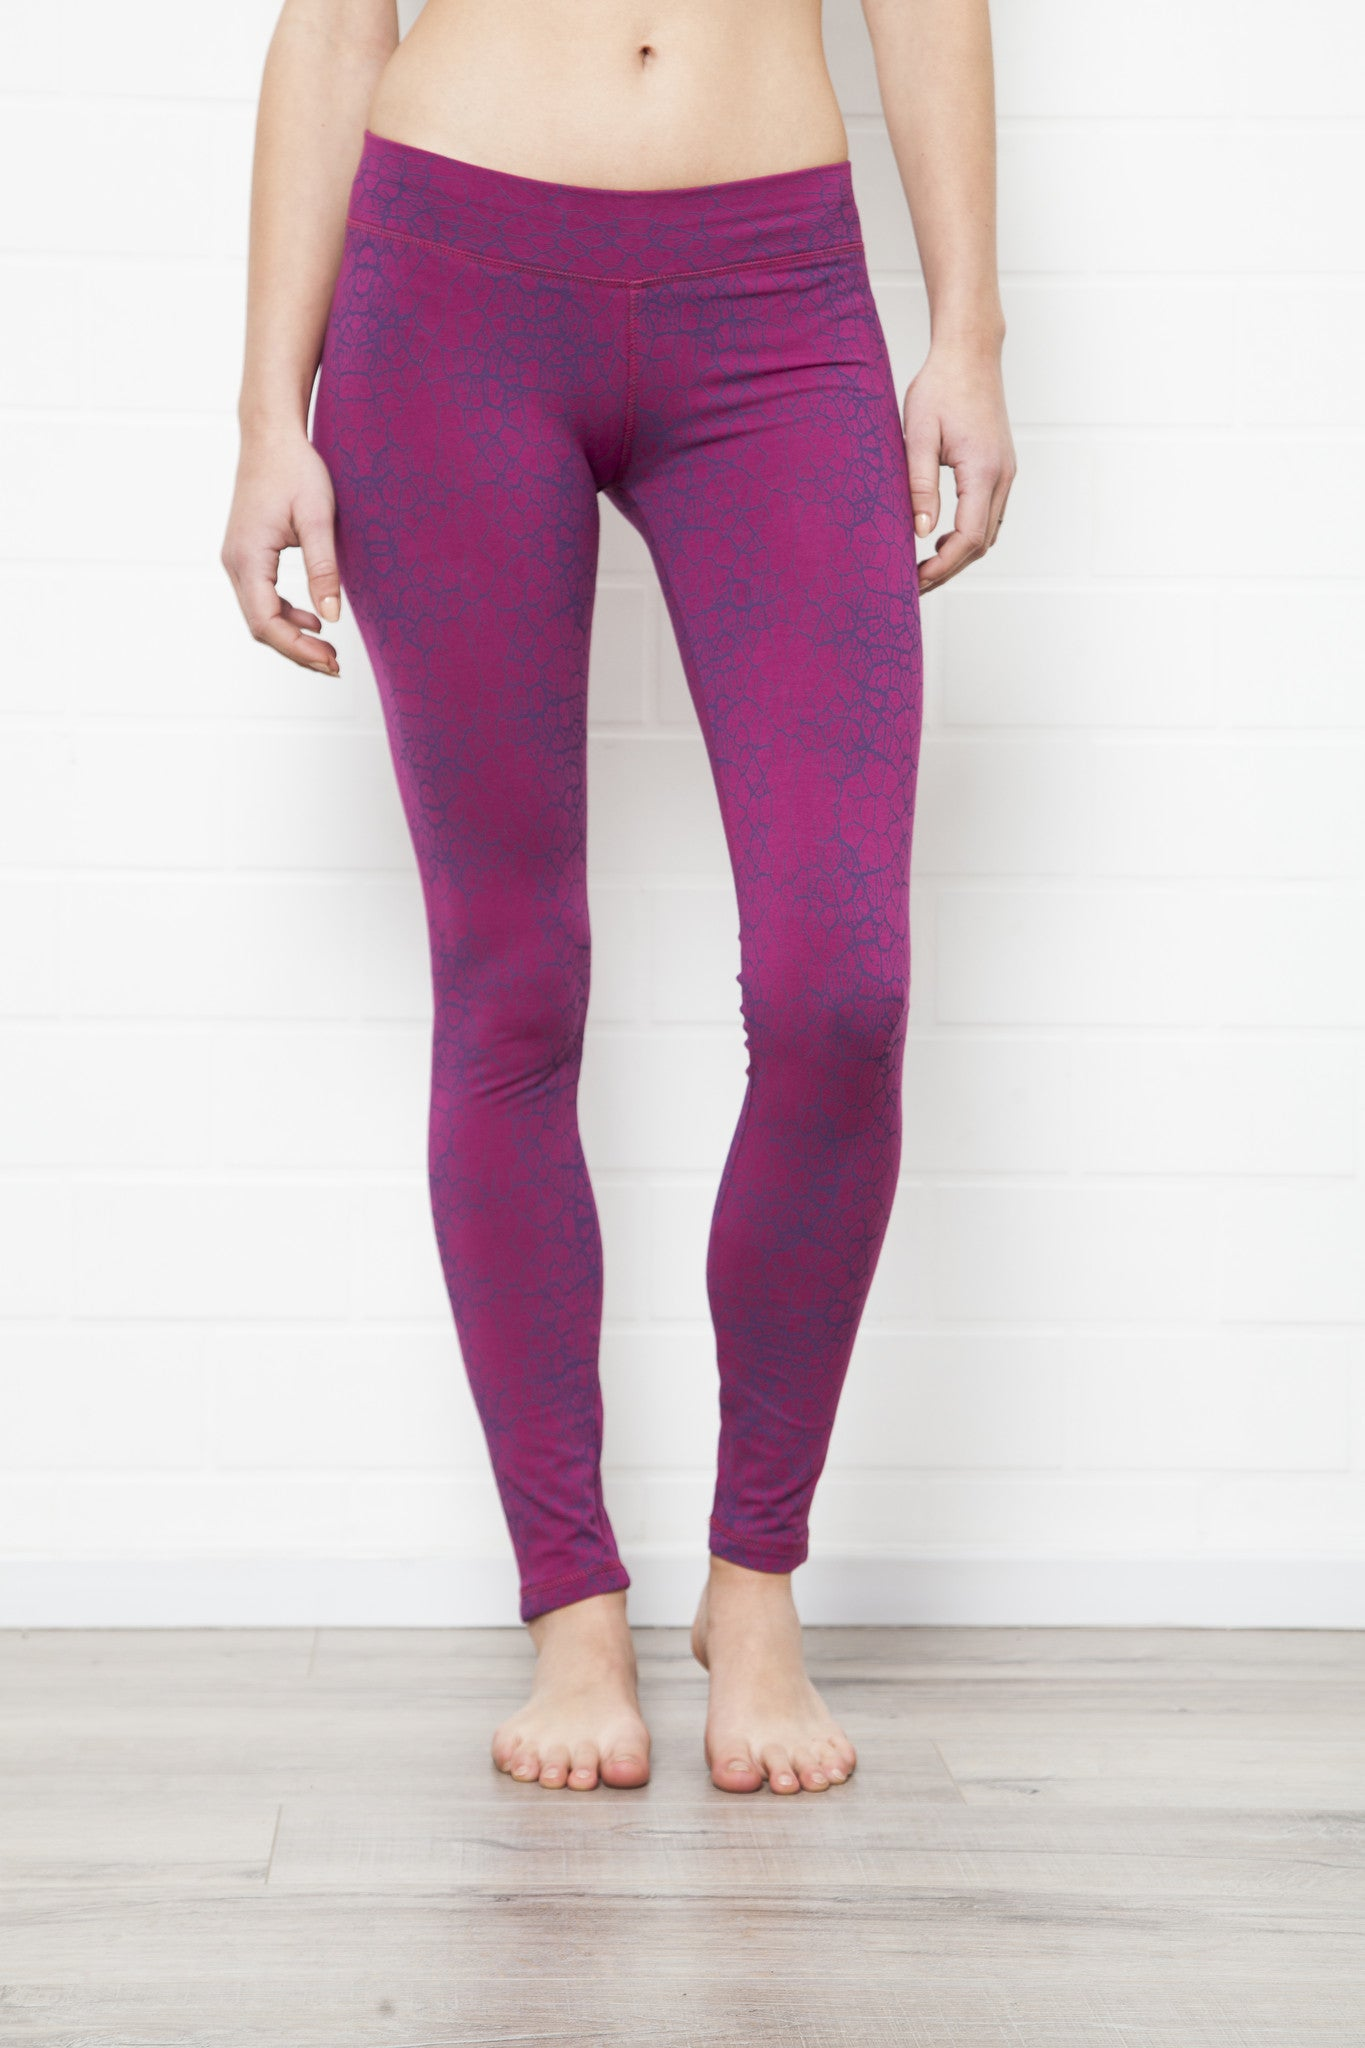 Cactus Fuchsia Purple Leggings Tight - FUNKY SIMPLICITY